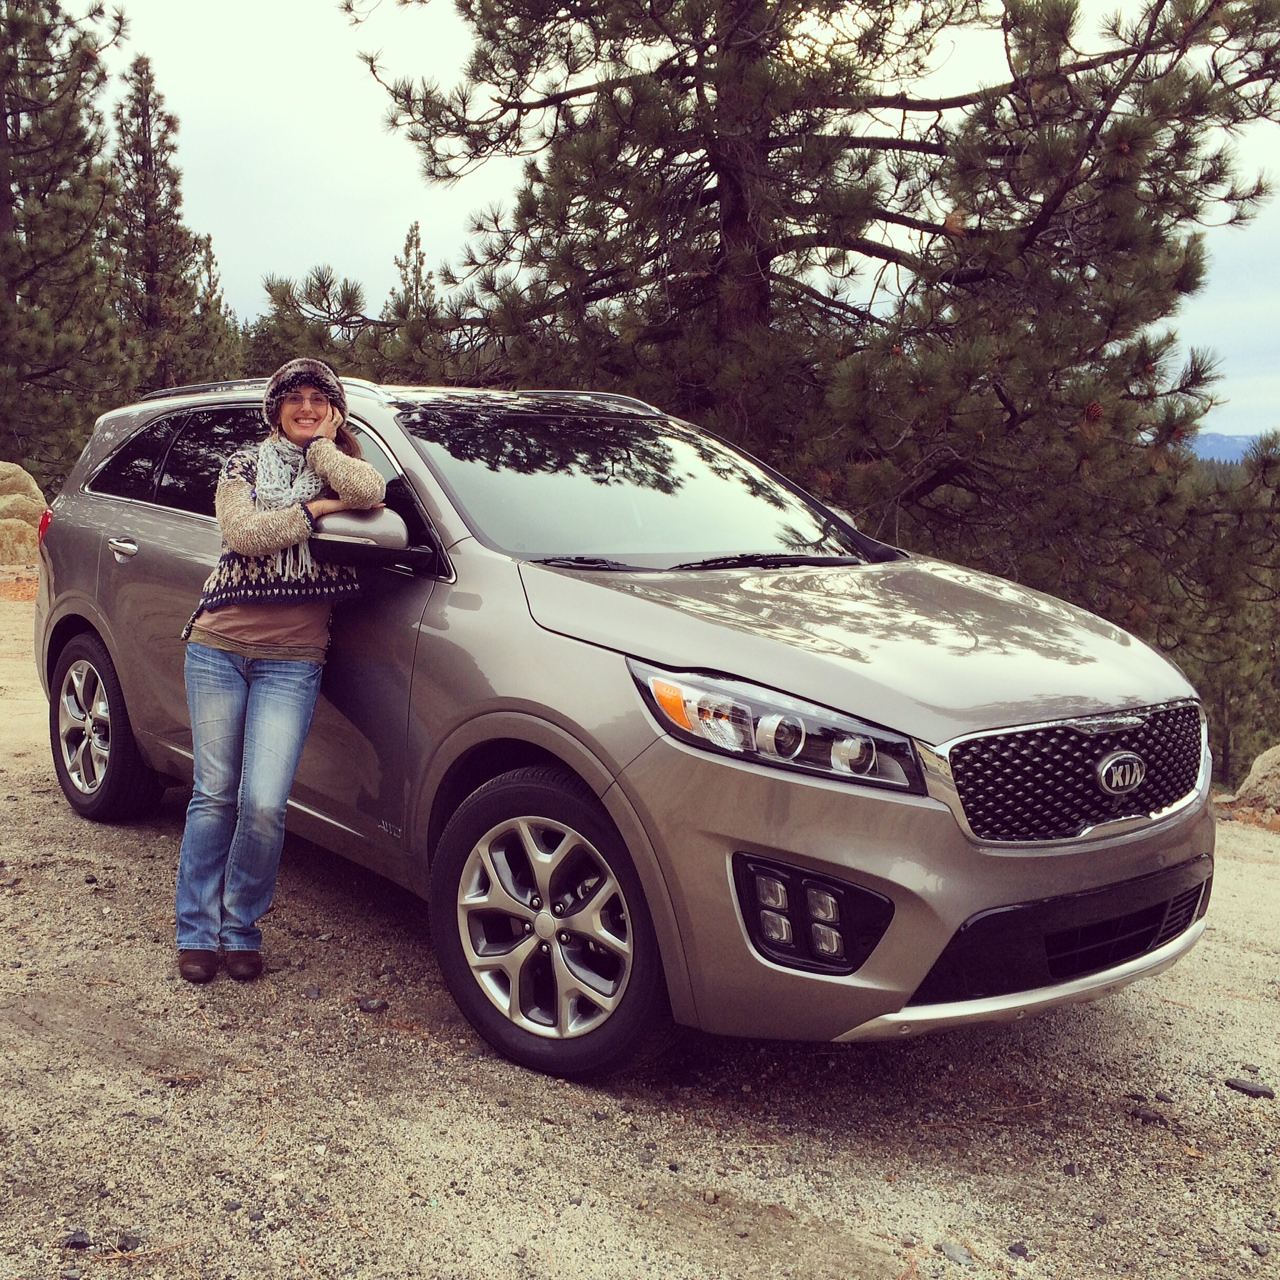 Post image for Taking the Lake Tahoe Curves in the New 2016 Kia Sorento